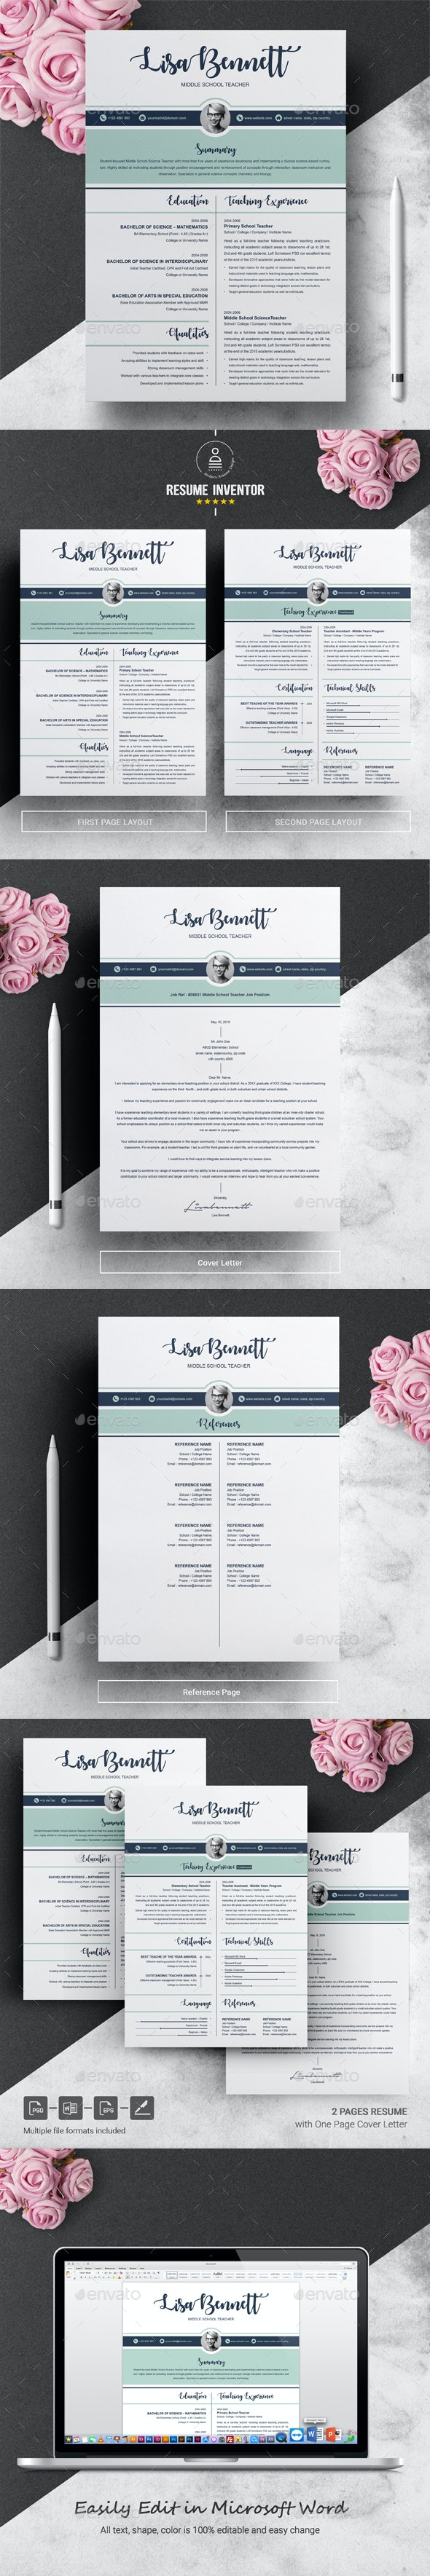 Resume Template Teacher from graphicriver.img.customer.envatousercontent.com